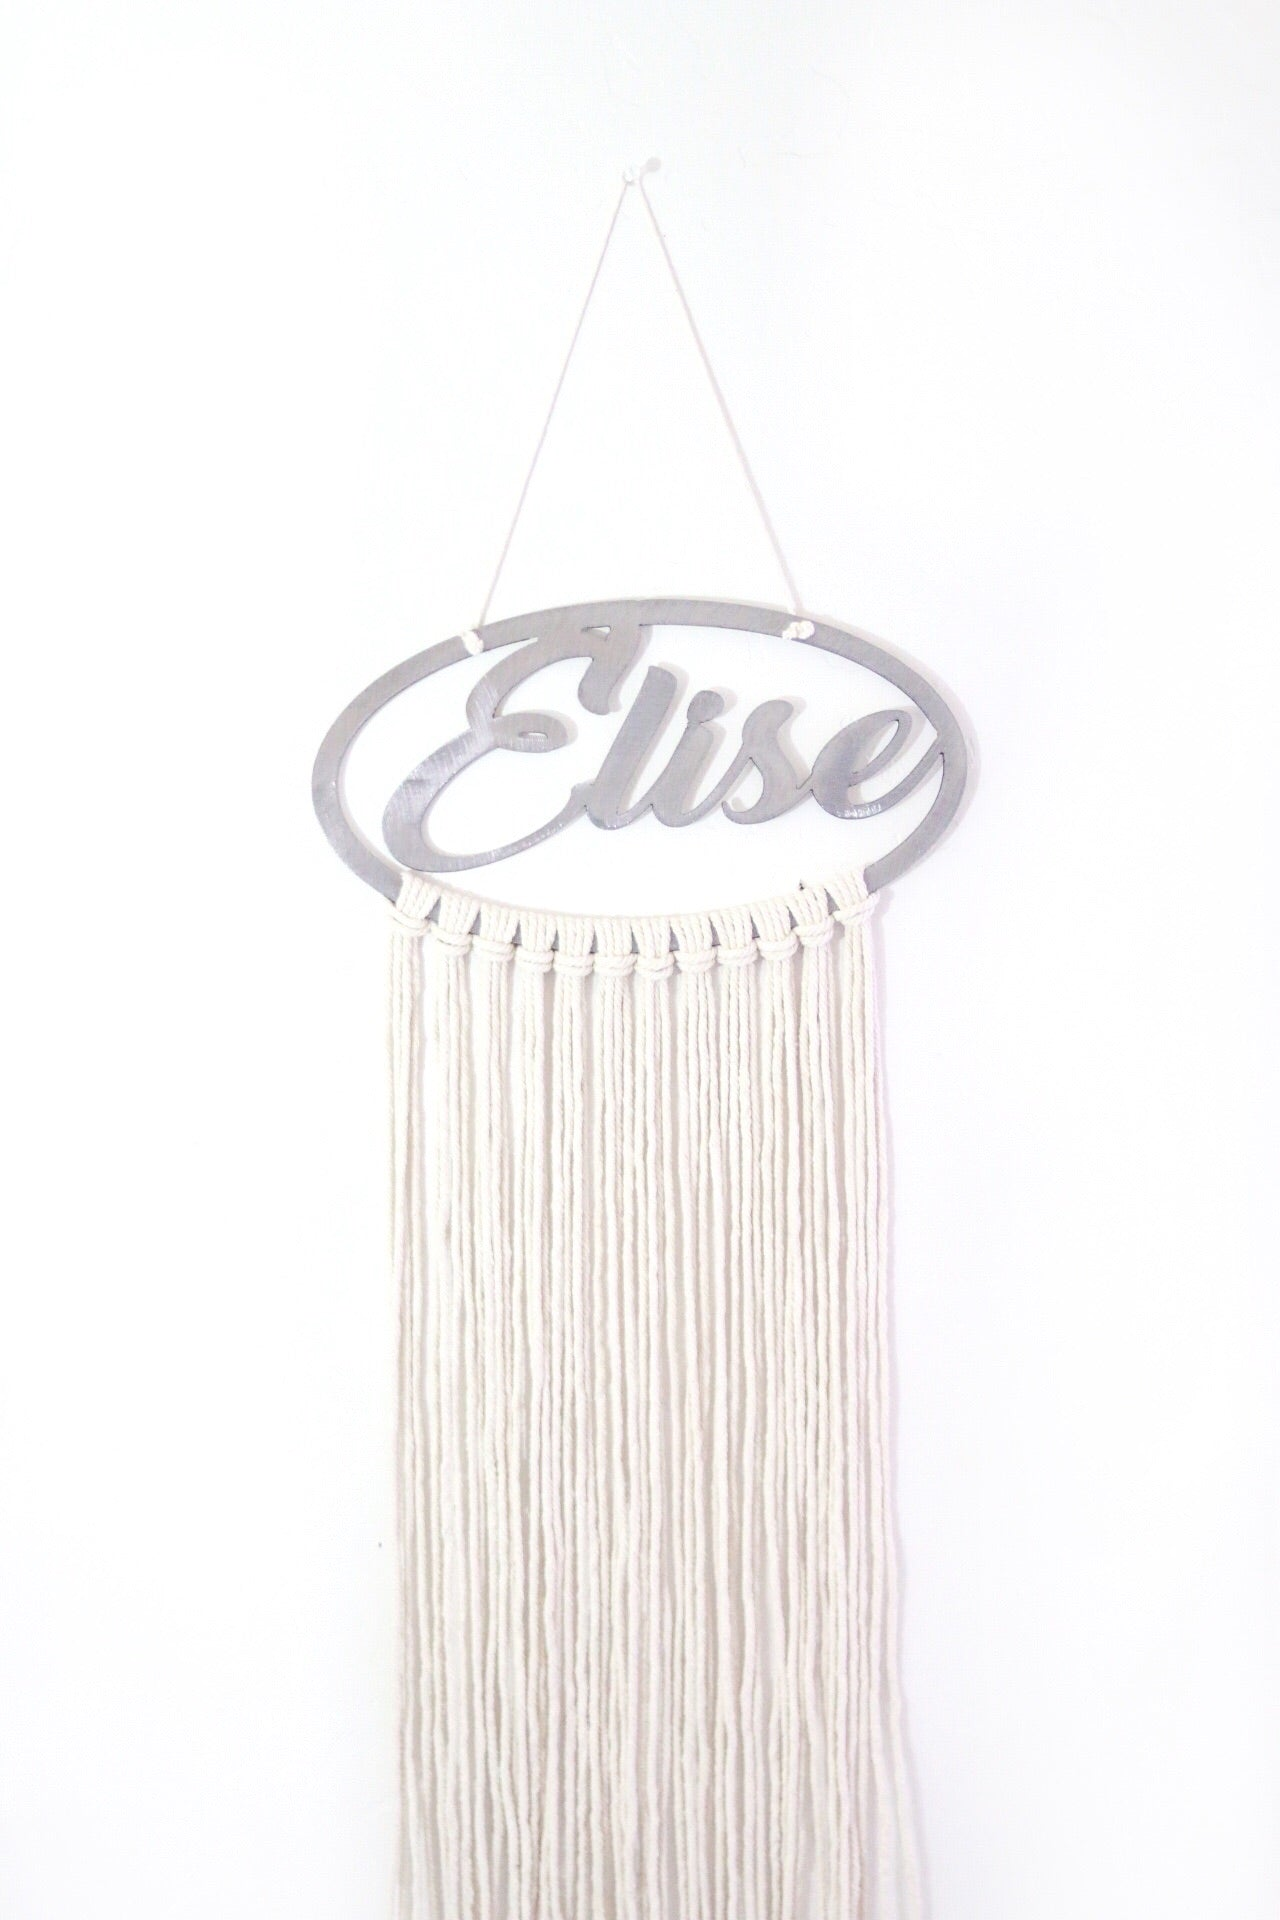 Personalized Macrame Bow Holder / Wall Hanging